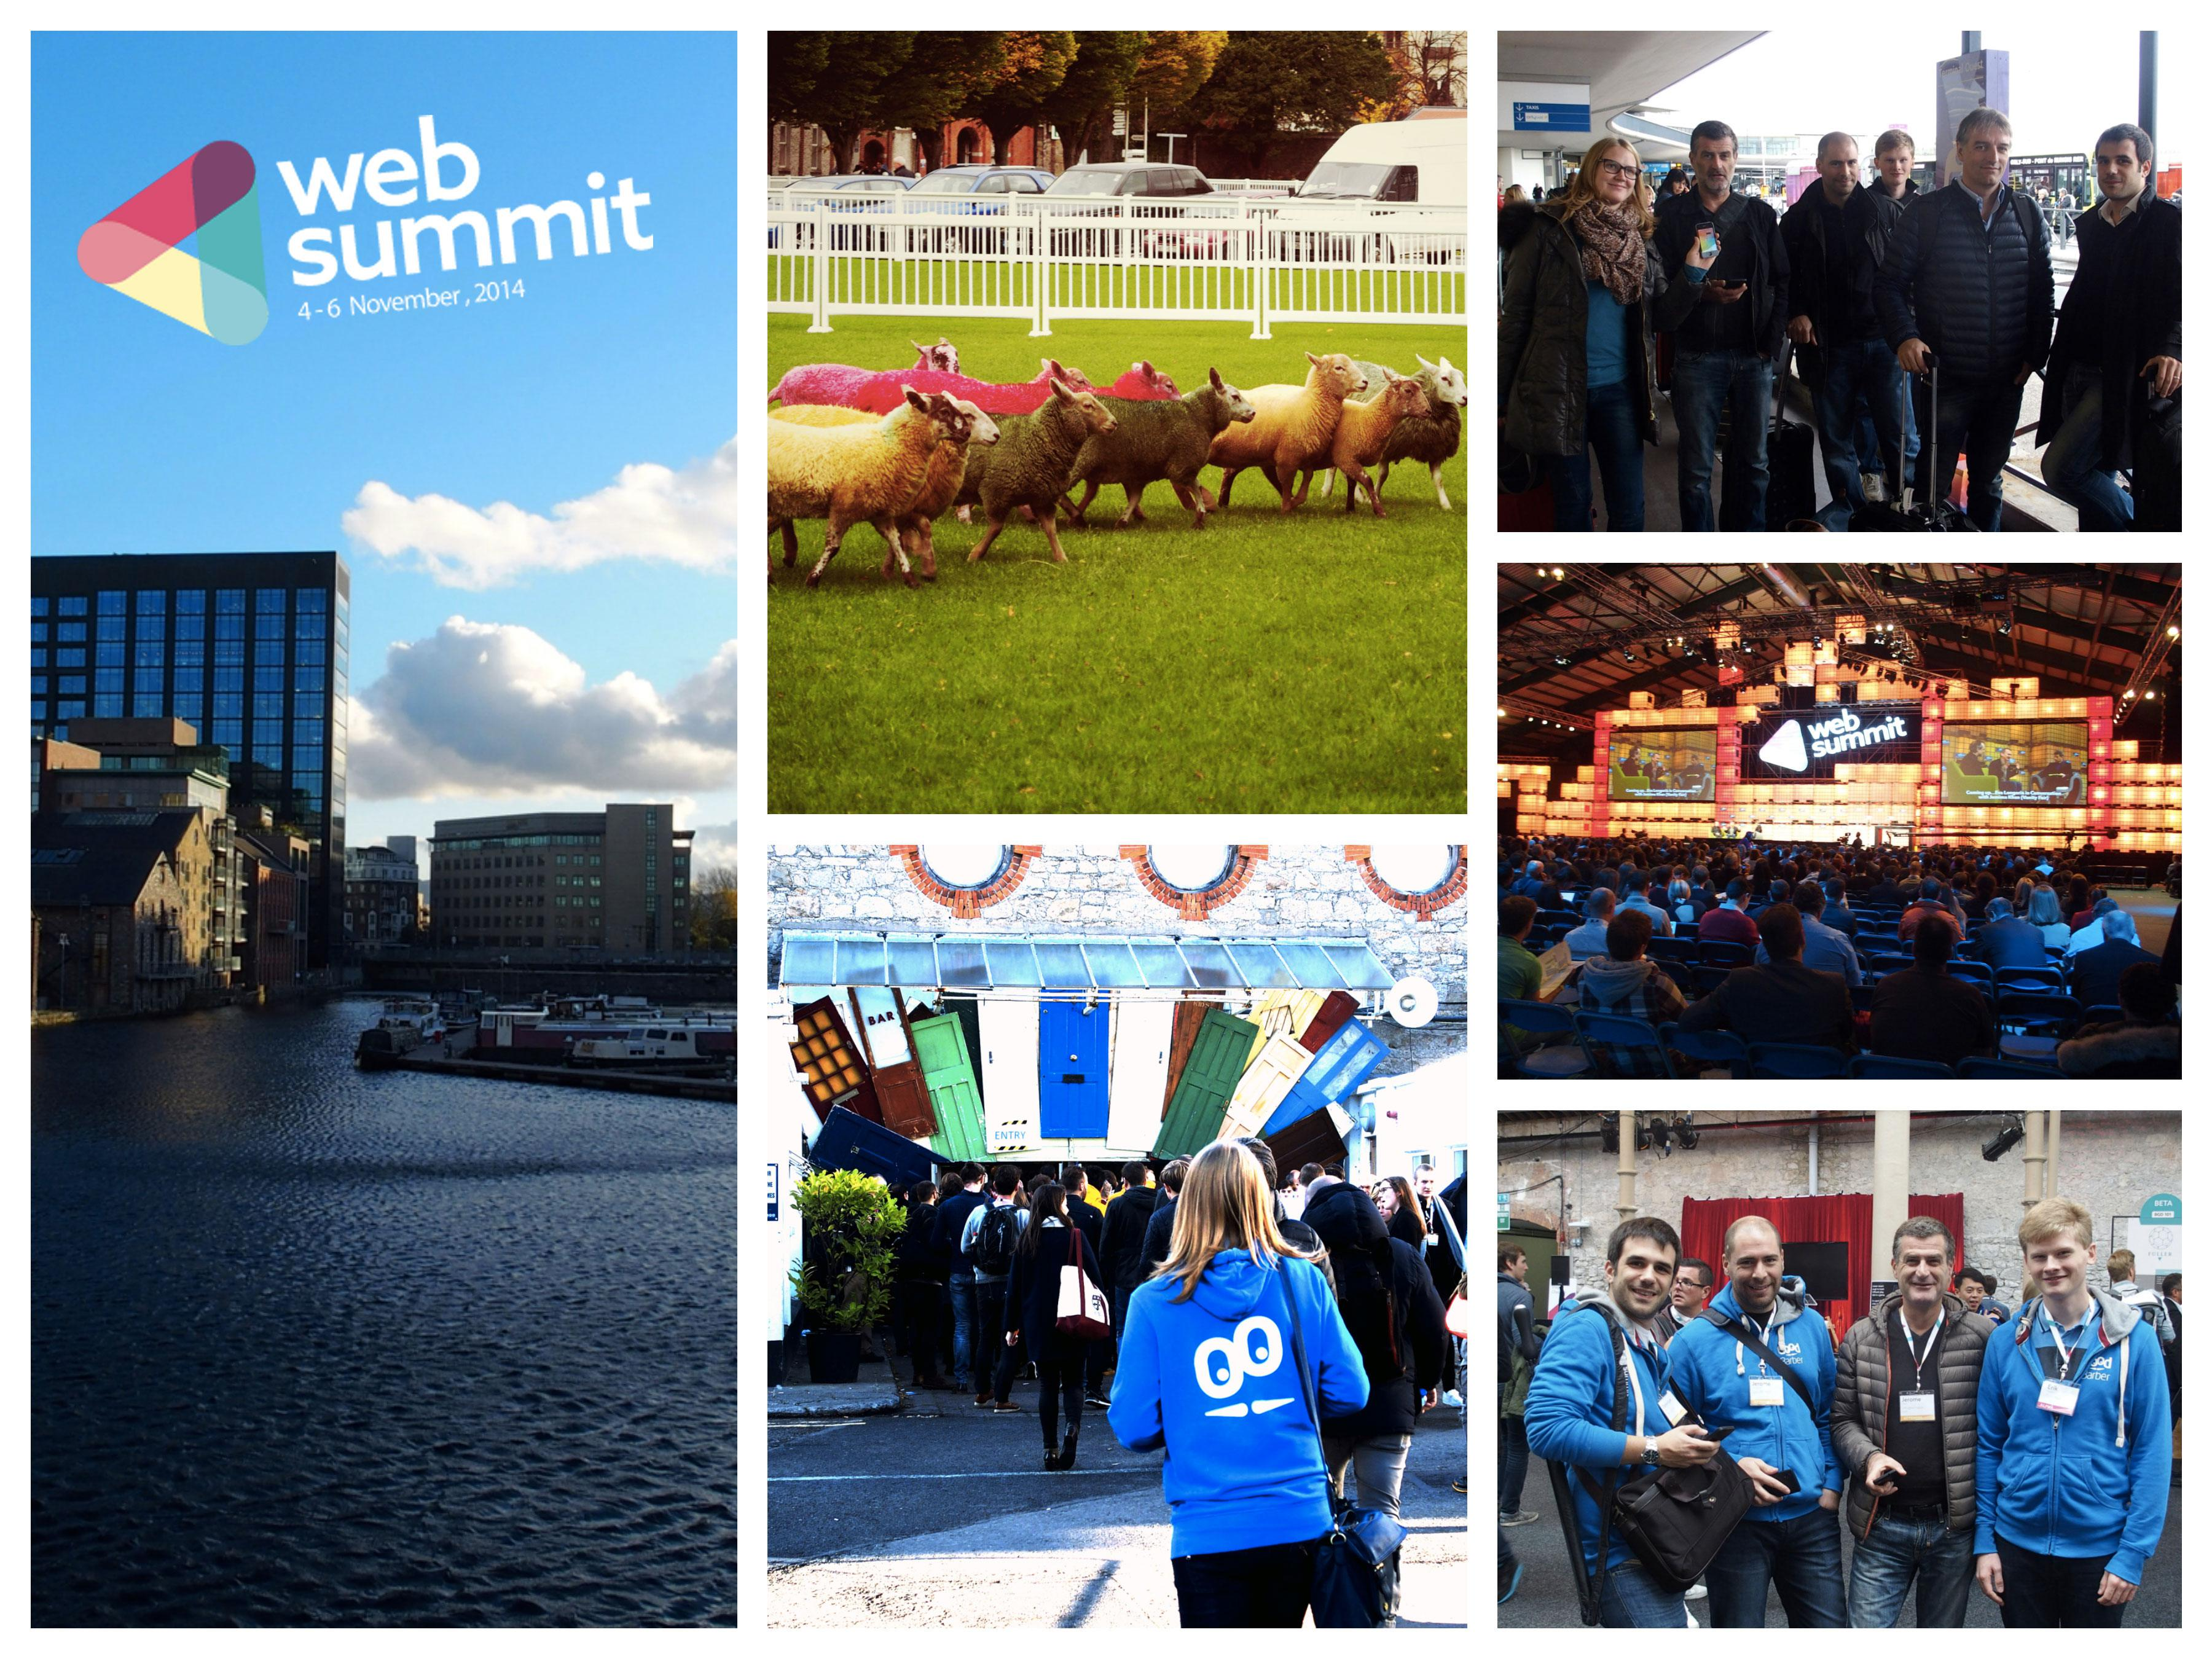 What happened during the 2014 Web Summit?